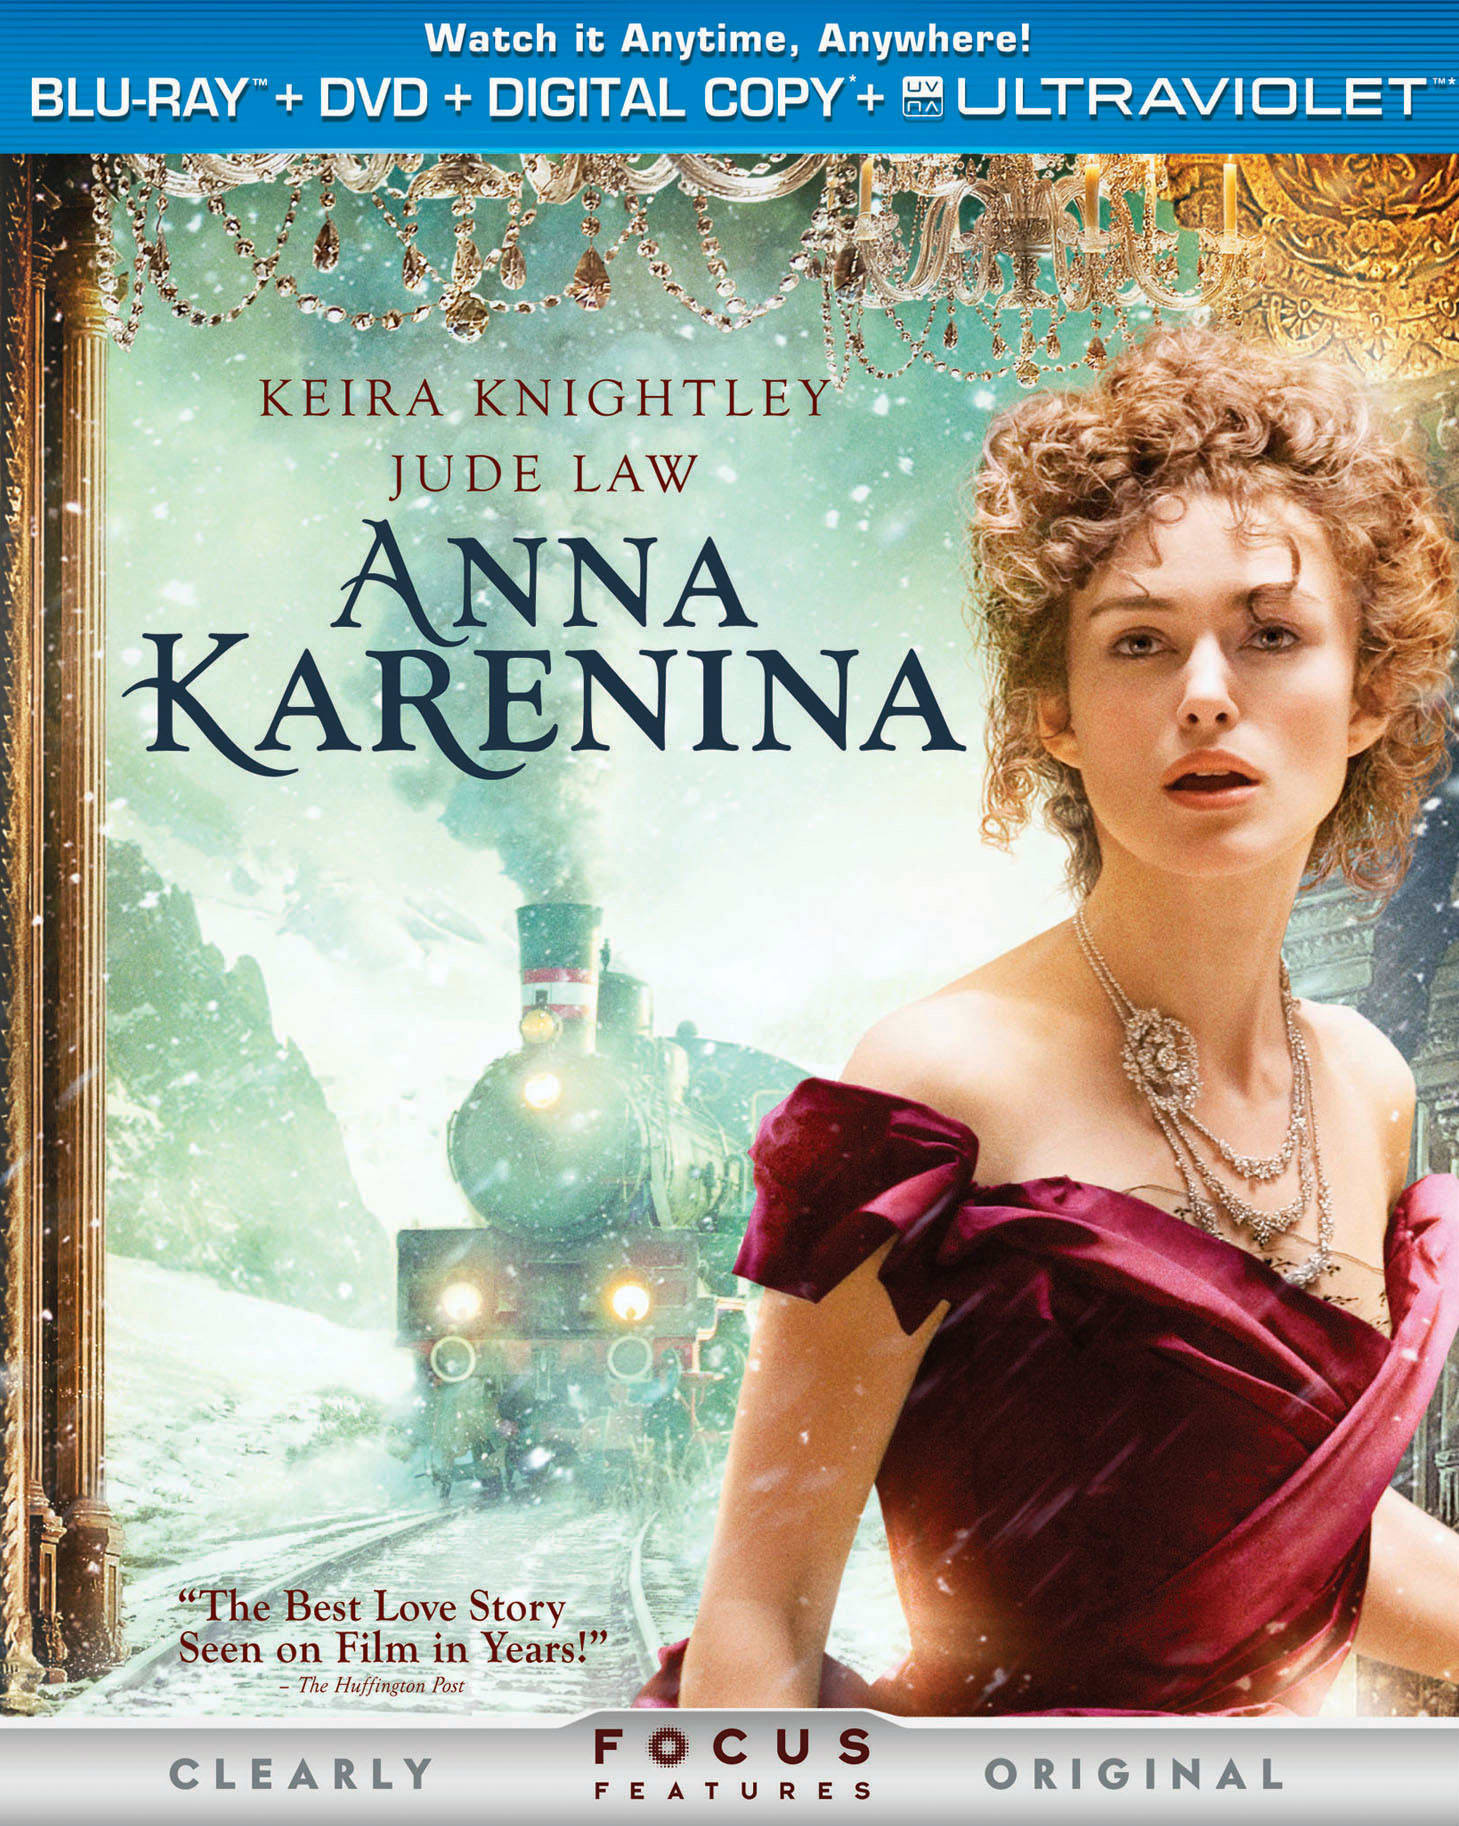 Anna Karenina (DVD + Digital + Ultraviolet) [Blu-ray]